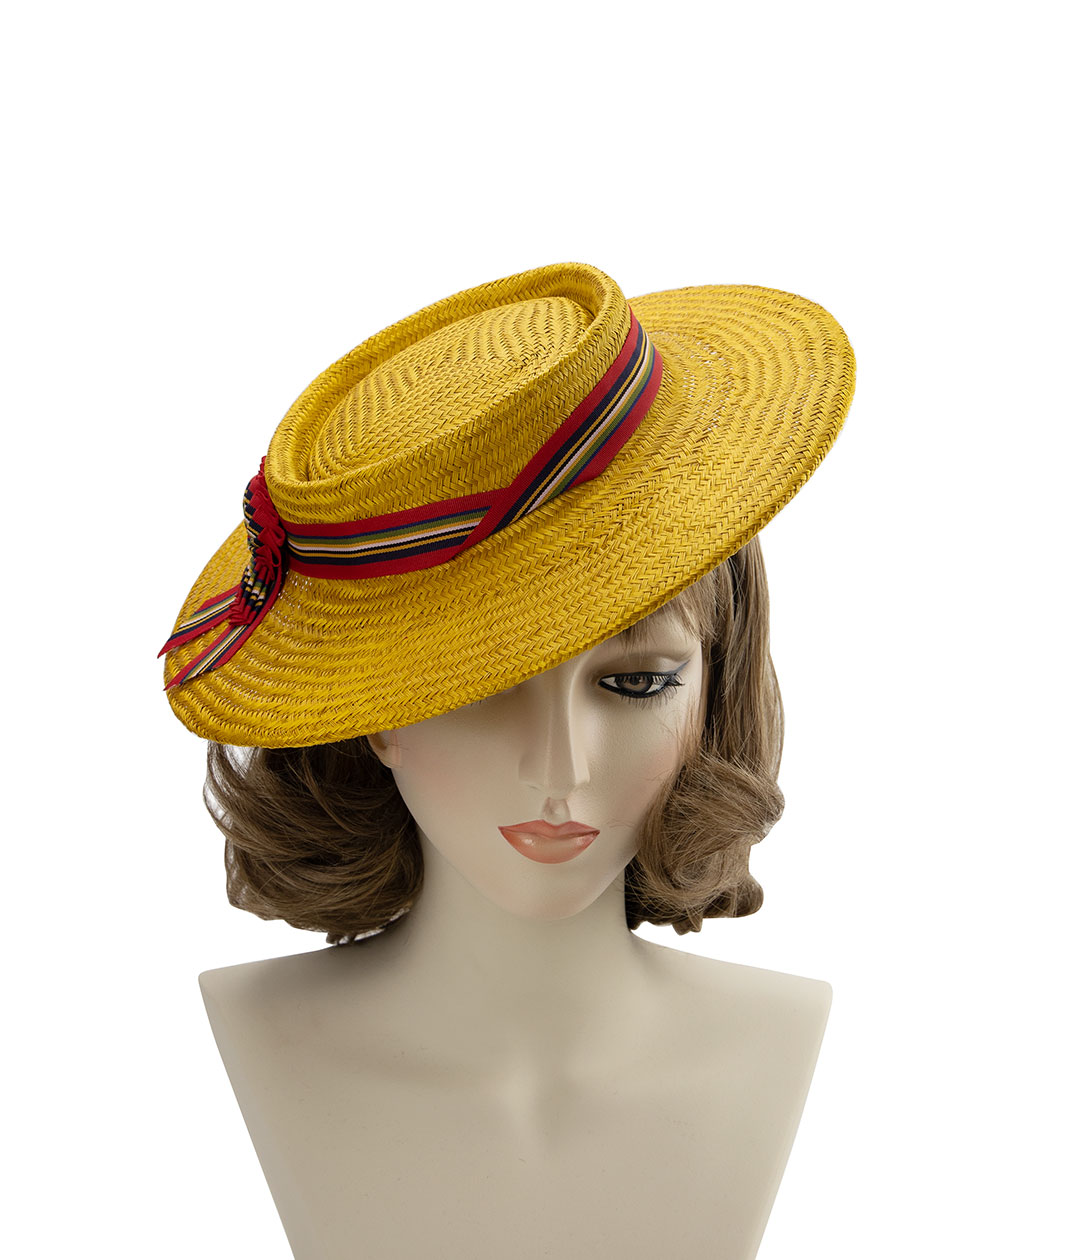 Vintage-style perching straw boater hat, displayed on a mannequin head.